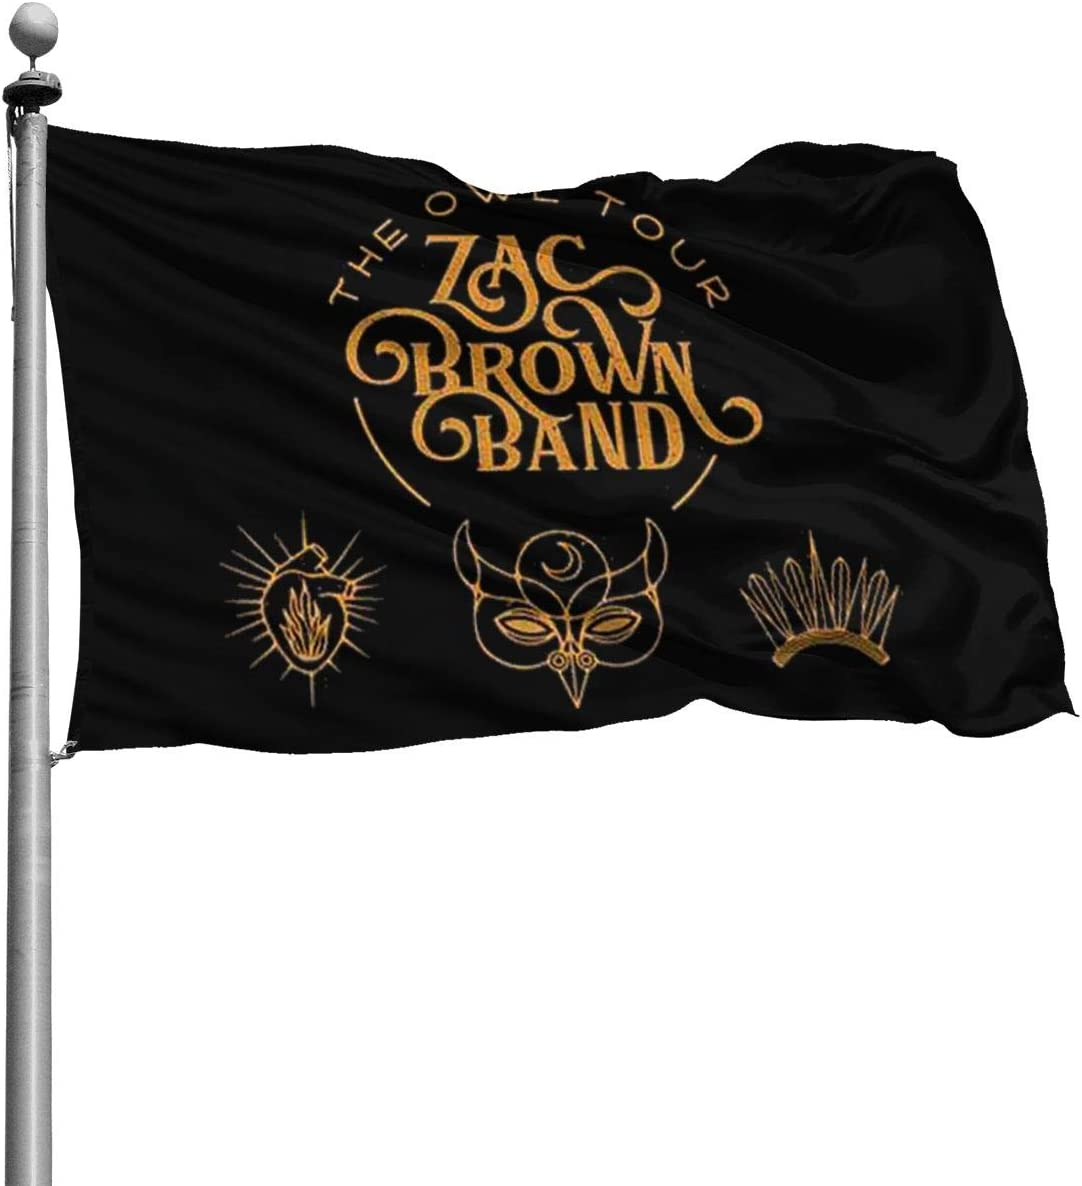 NOT Zac Brown Band Home Decoration Flag Garden Flag Indoor Outdoor Flag 4x6 Ft